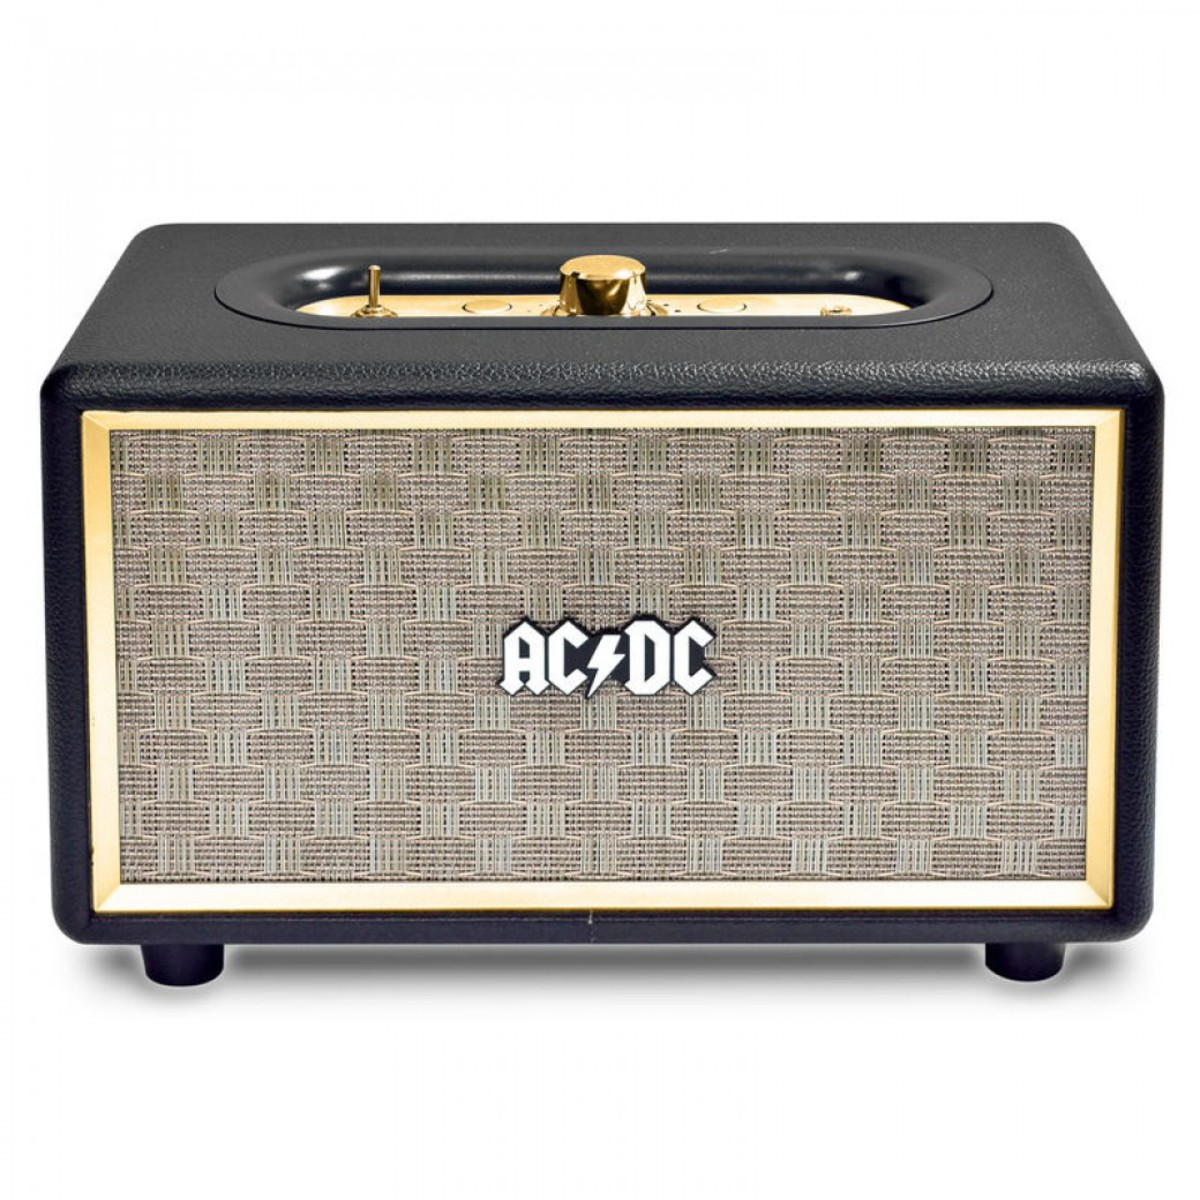 reproduktor AC/DC - CLASSIC CL2 VINTAGE PORTABLE BLUETOOTH SPEAKER - BLACK - ACDCL2